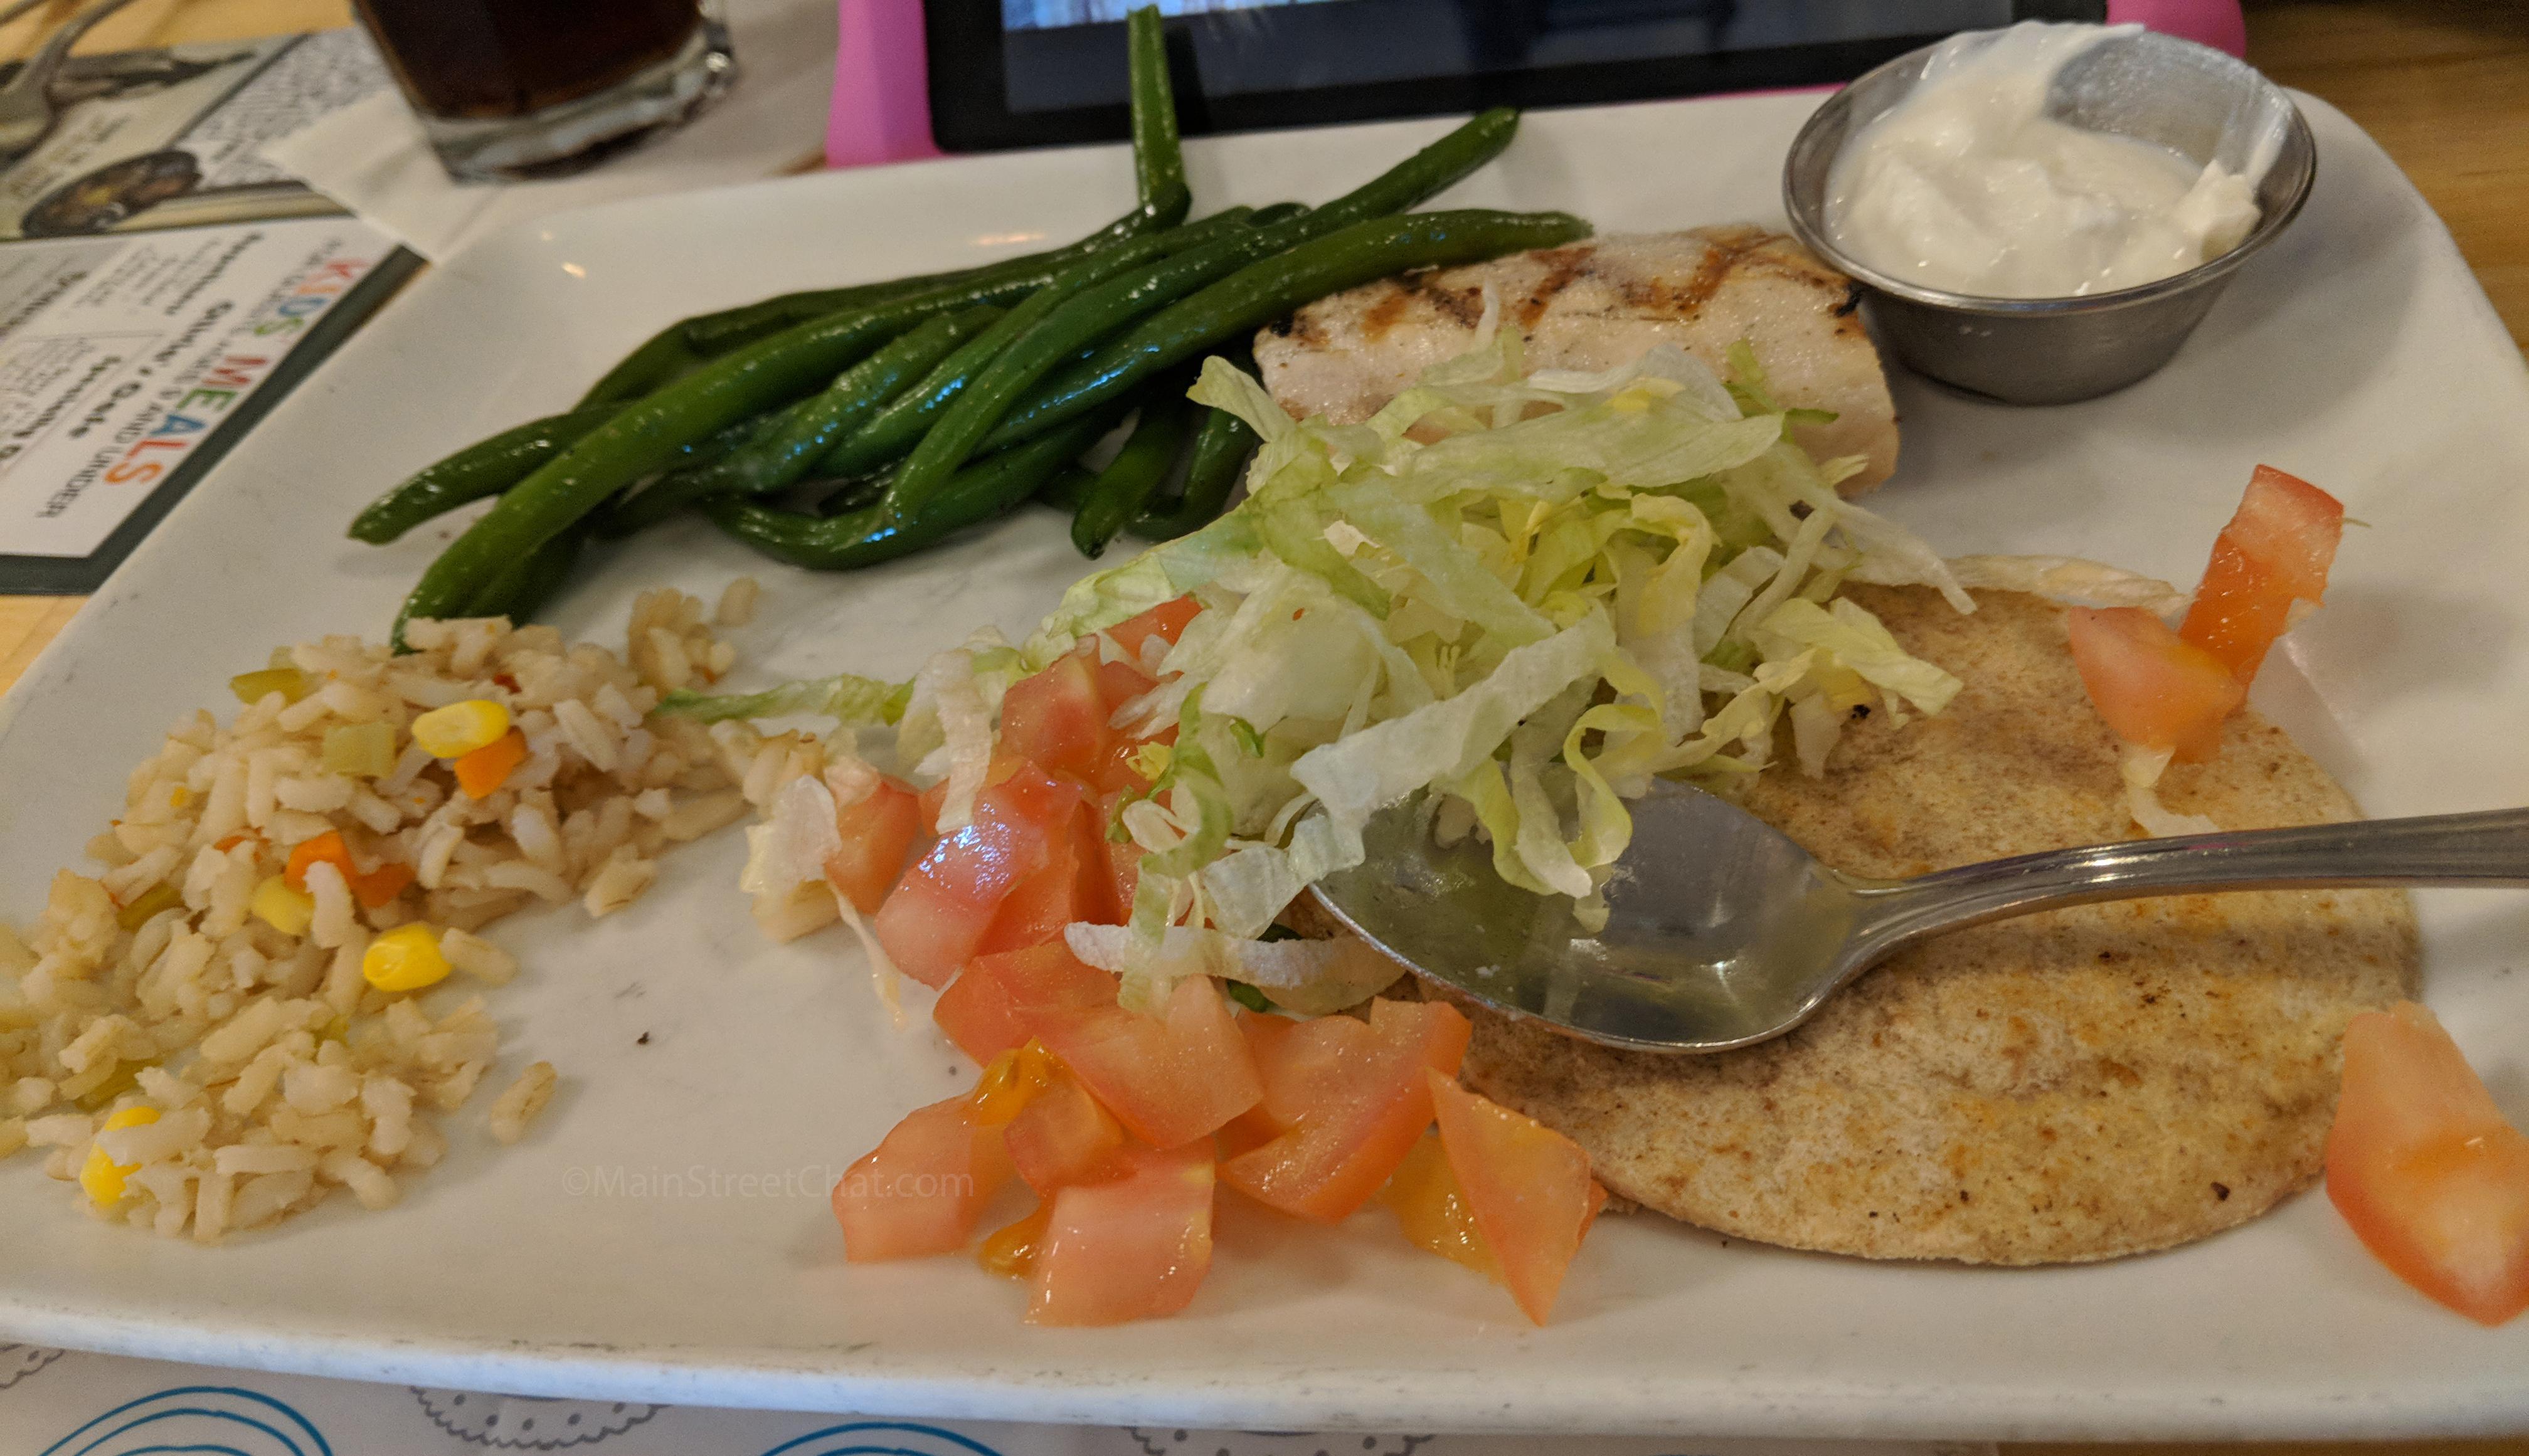 Olivia's Build-Your-Own Taco with Fish of the Day